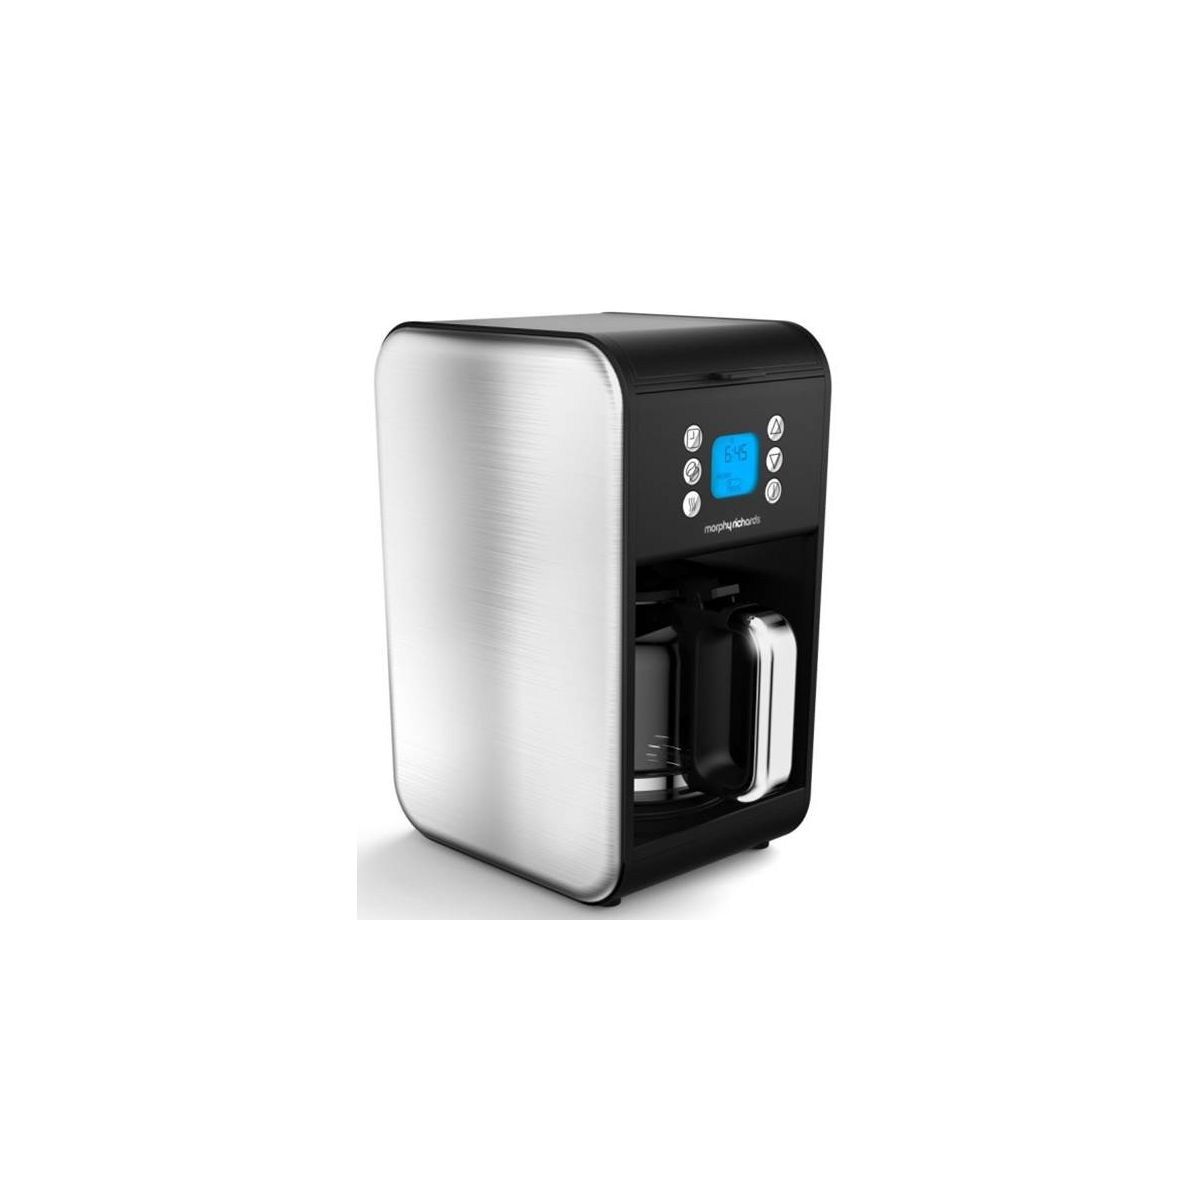 Cafetière programmable MORPHY RICHARDS Accents Refresh Inox